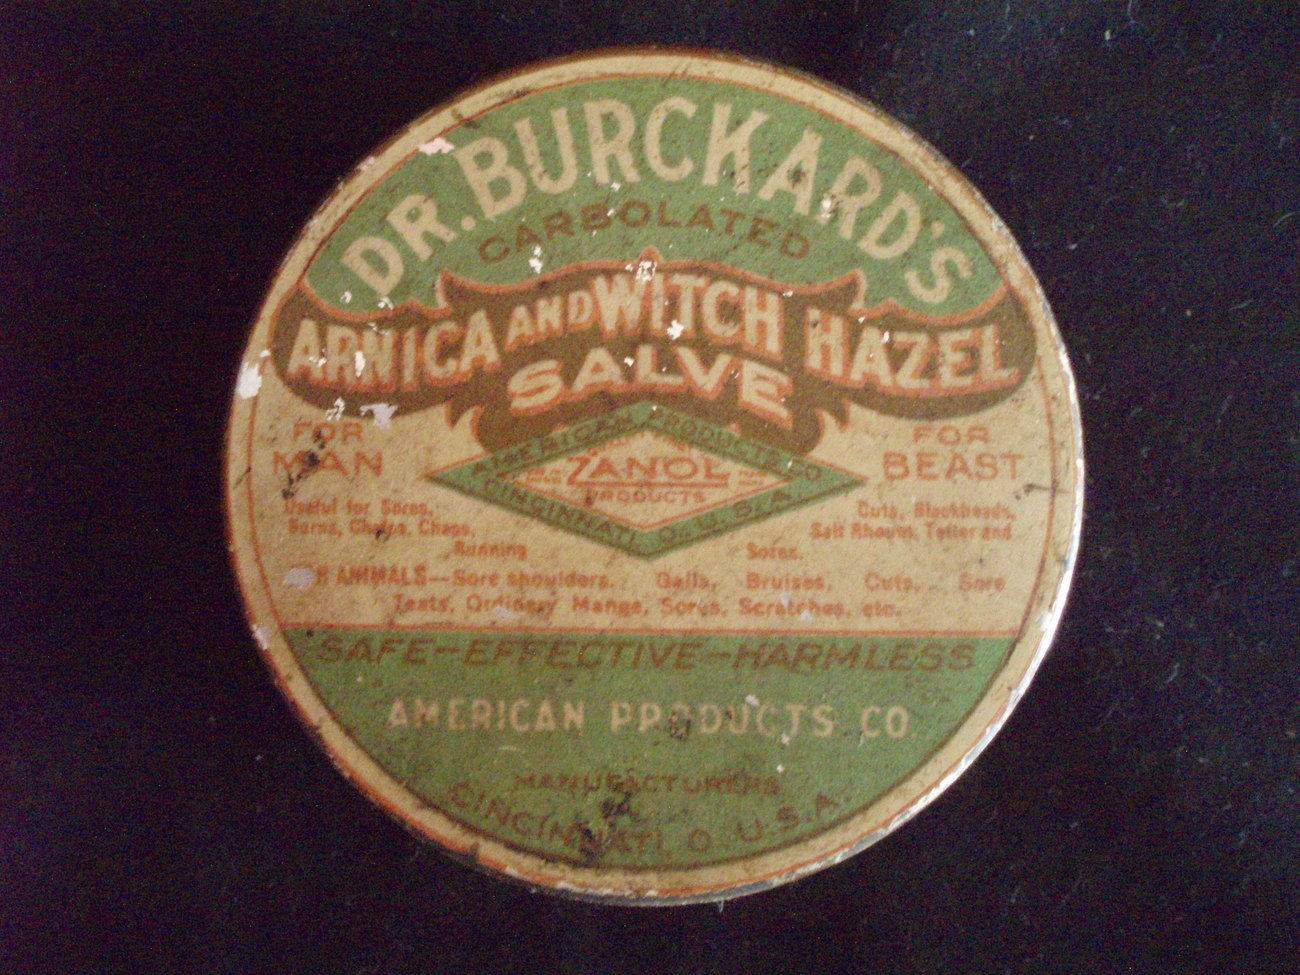 Dr. Burkards witch hazel salve vintage tin  Zanol Co.